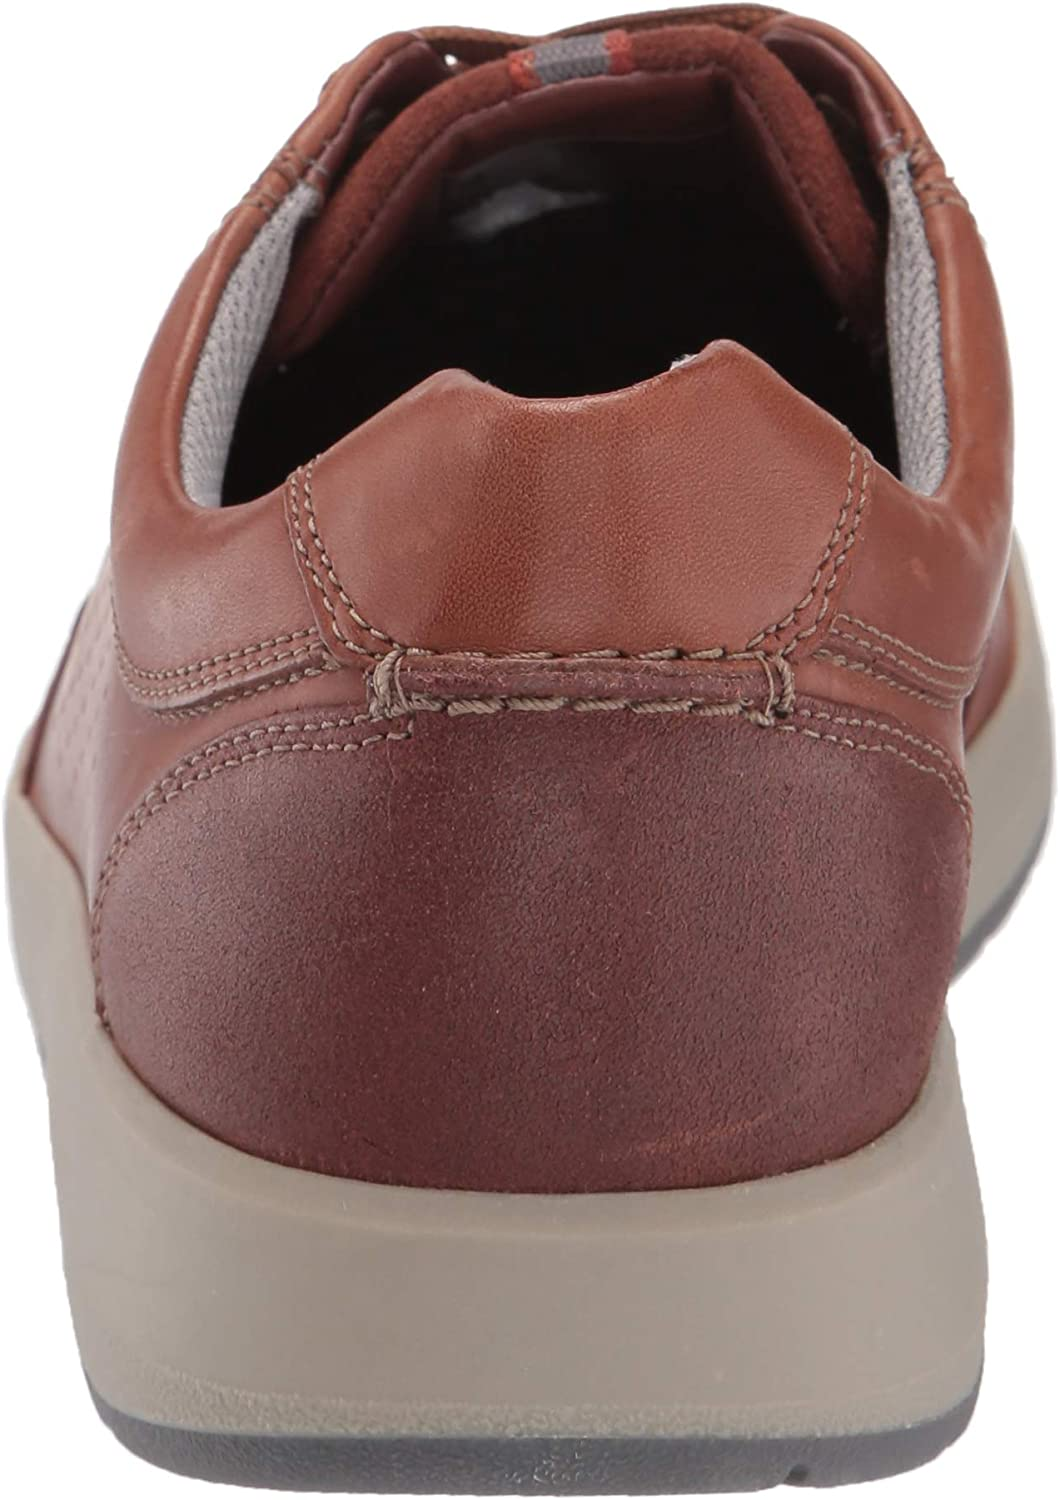 Details about  /Boys Clarks Smart Hook /& Loop Leather /& Material School Shoes Apollo Step